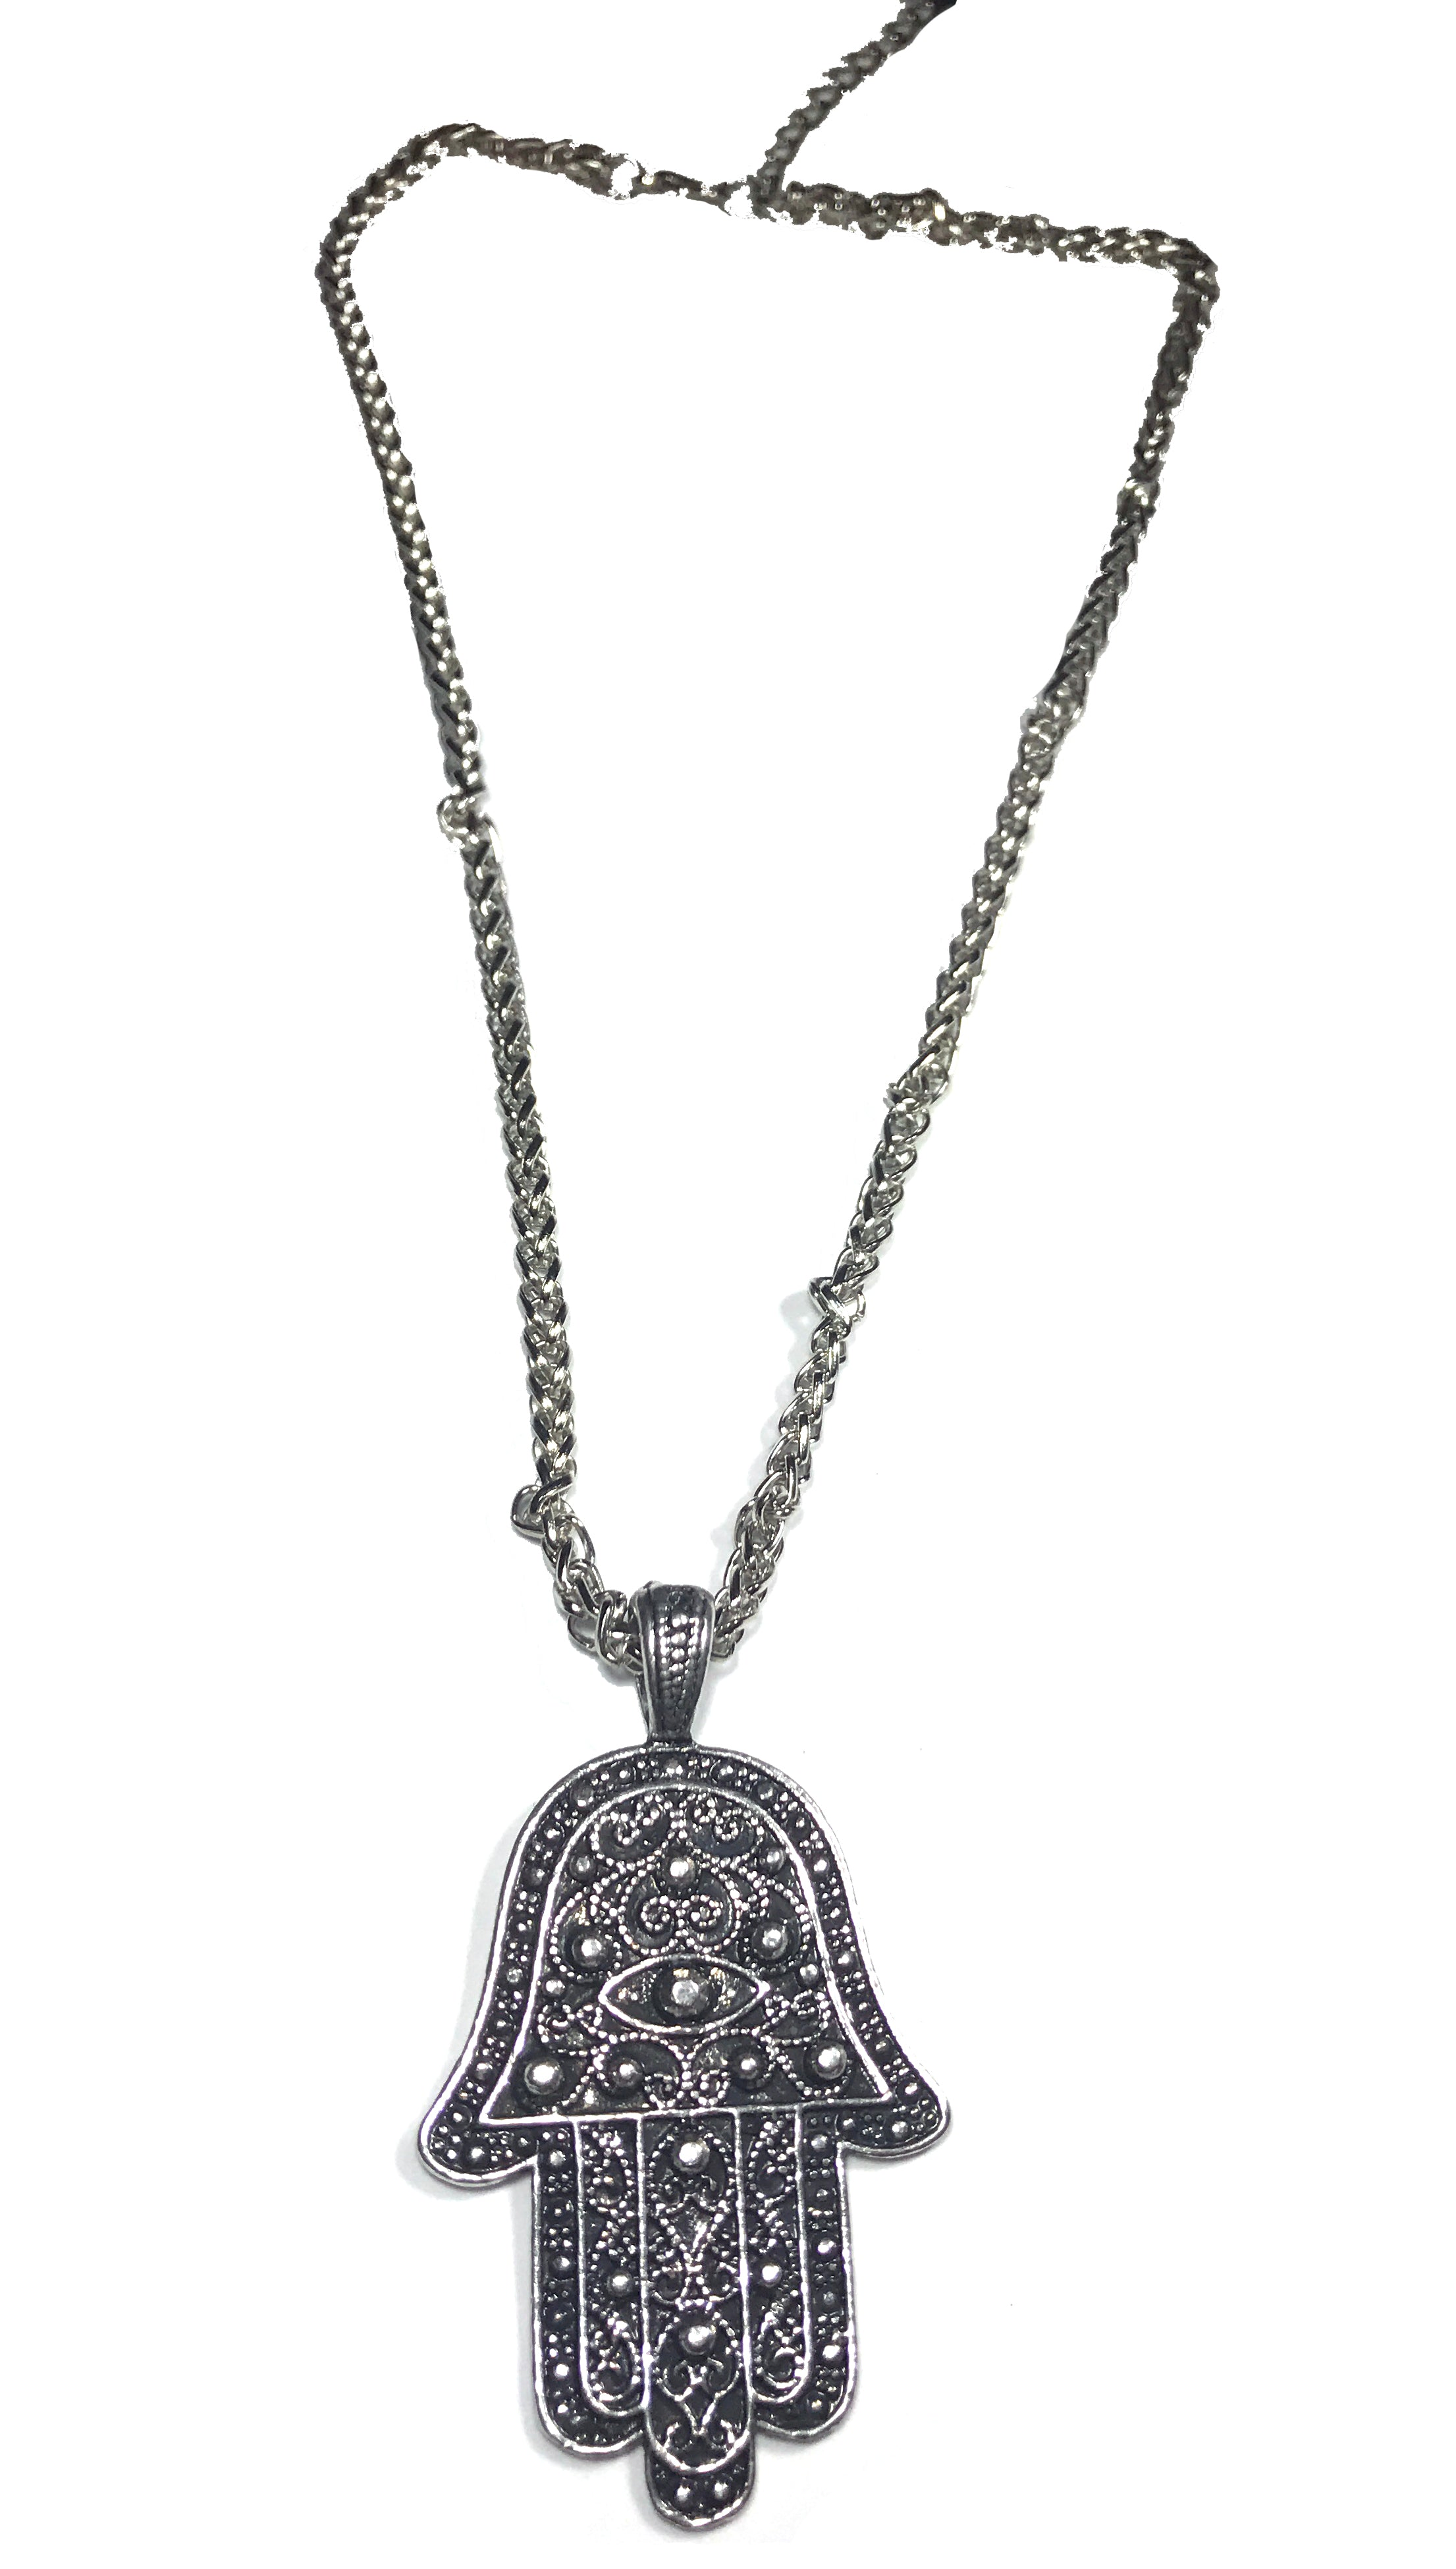 Hamsa Rhinestud Charm Necklace in Antique Silver